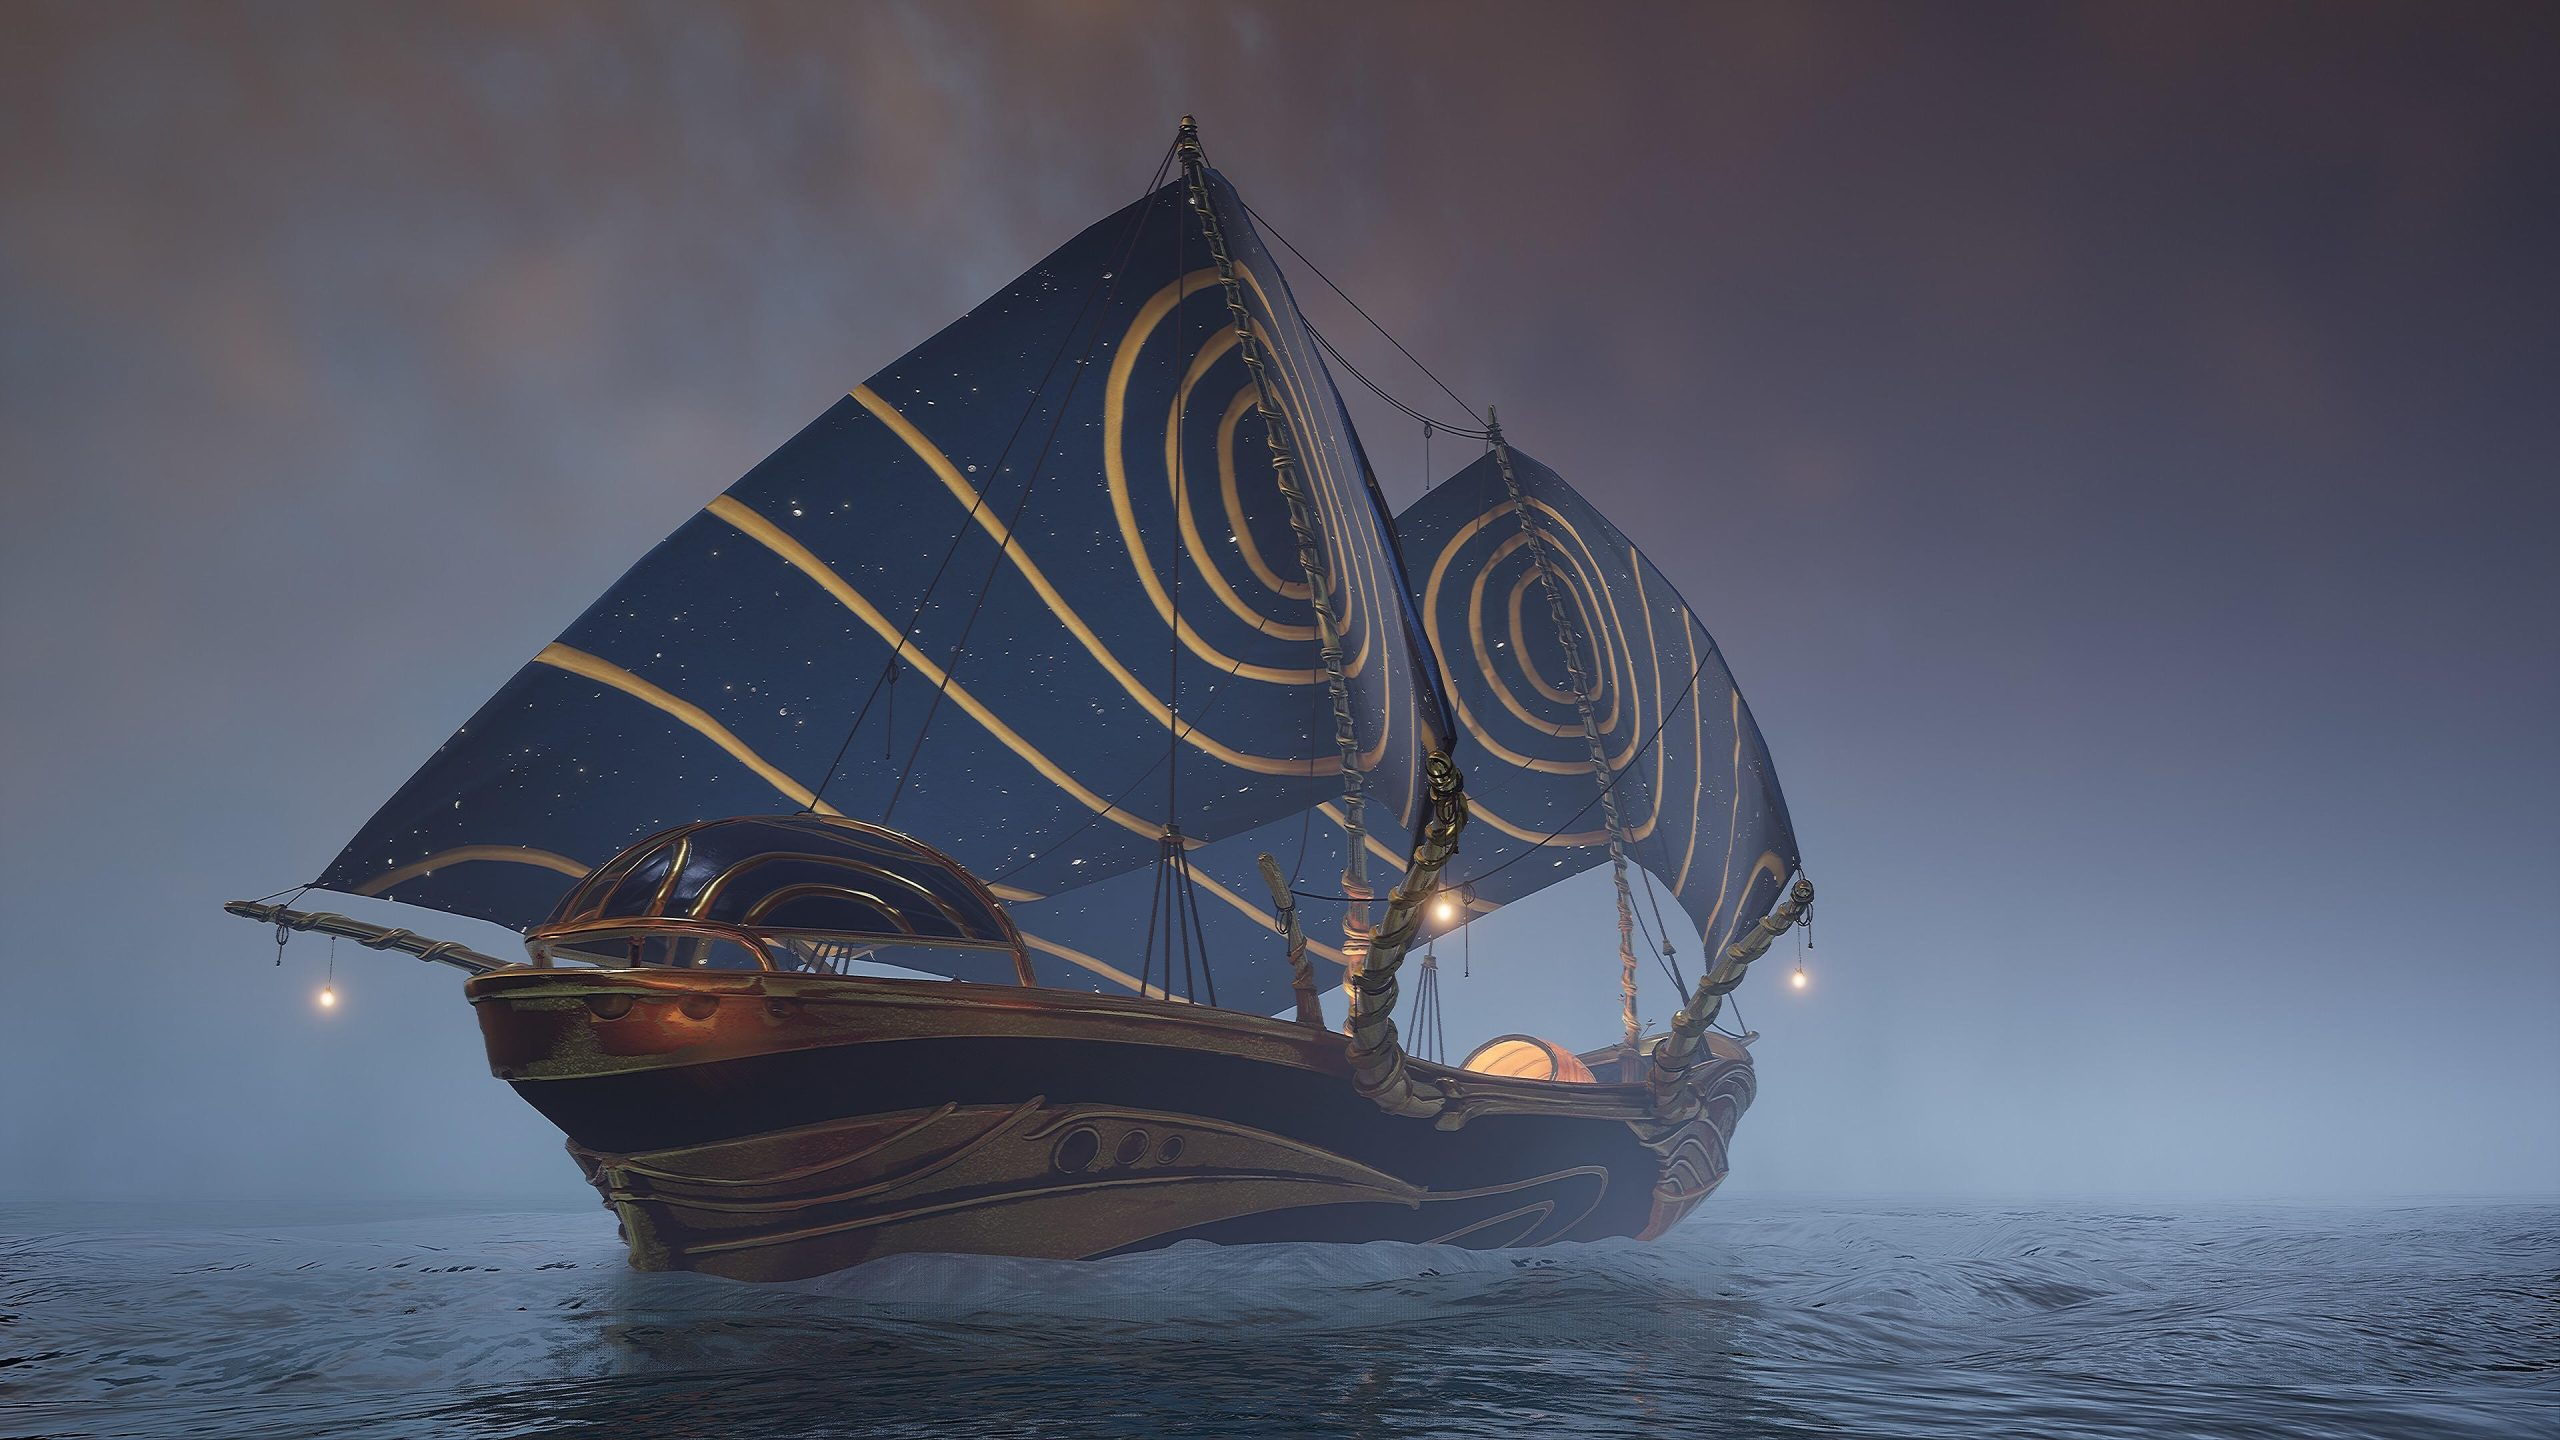 A boat sailing the seas found within The Waylanders.